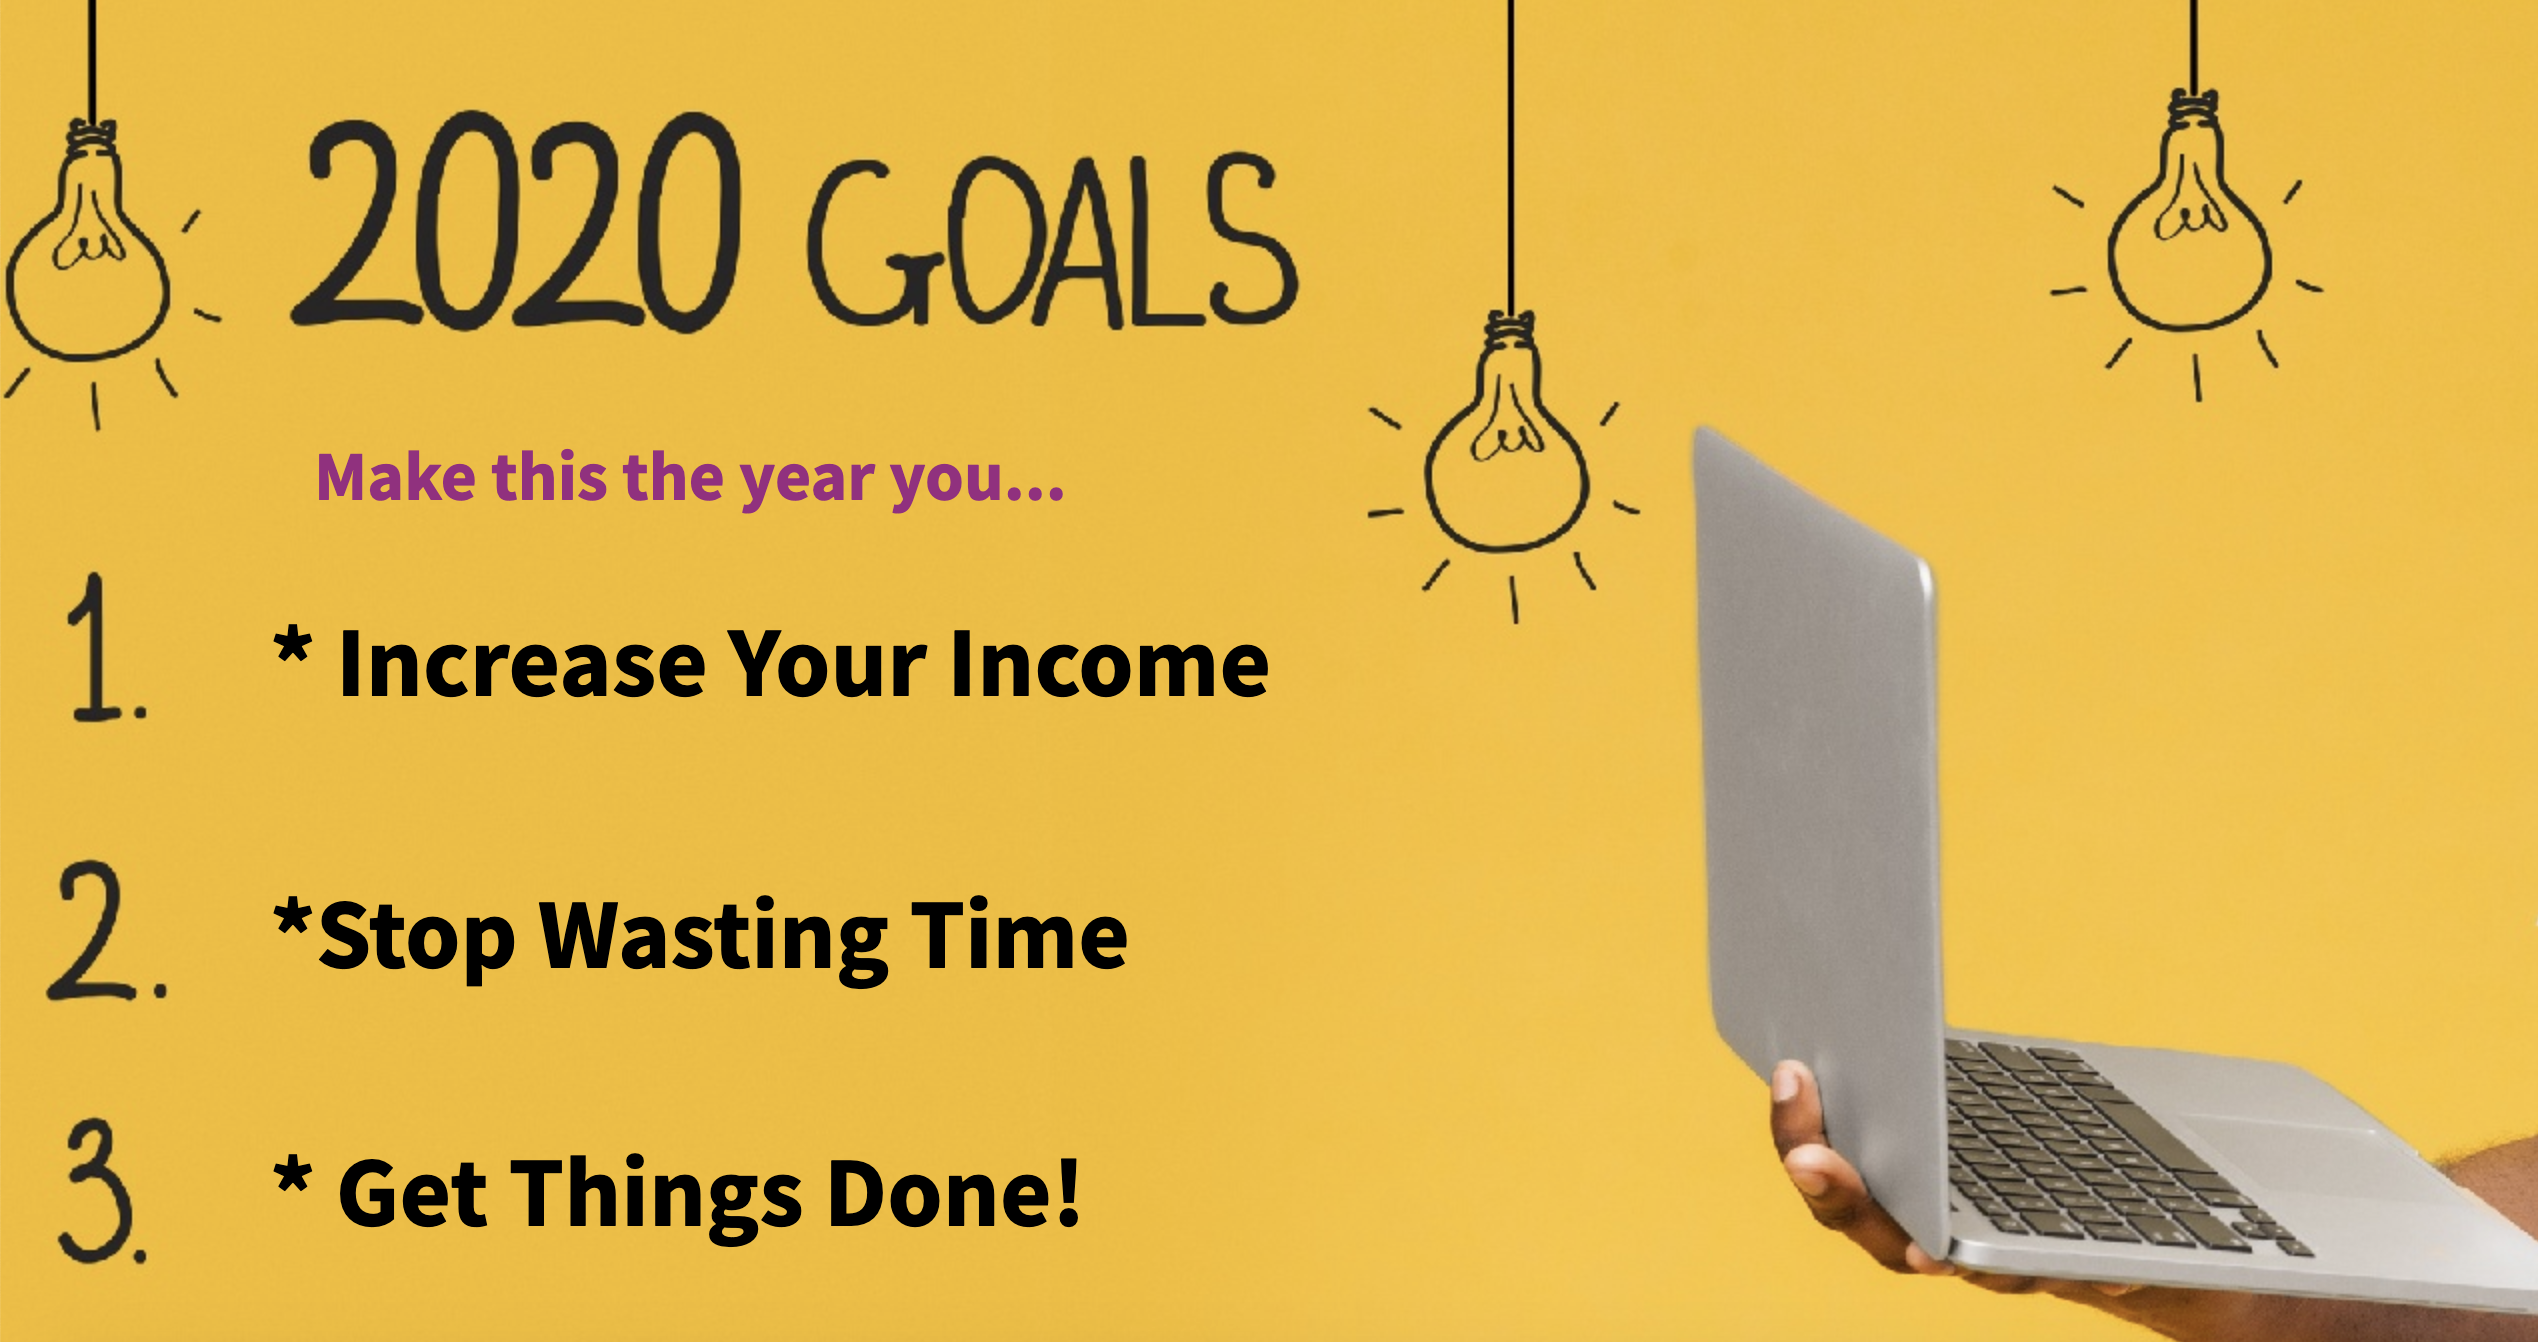 Strategic Business Planning Made Easy - At the end of this 5-hour workshop, you will have your entire blueprint for 2020 complete with the marketing systems, calendar, and money tracking know-how you'll need to see your goals through.